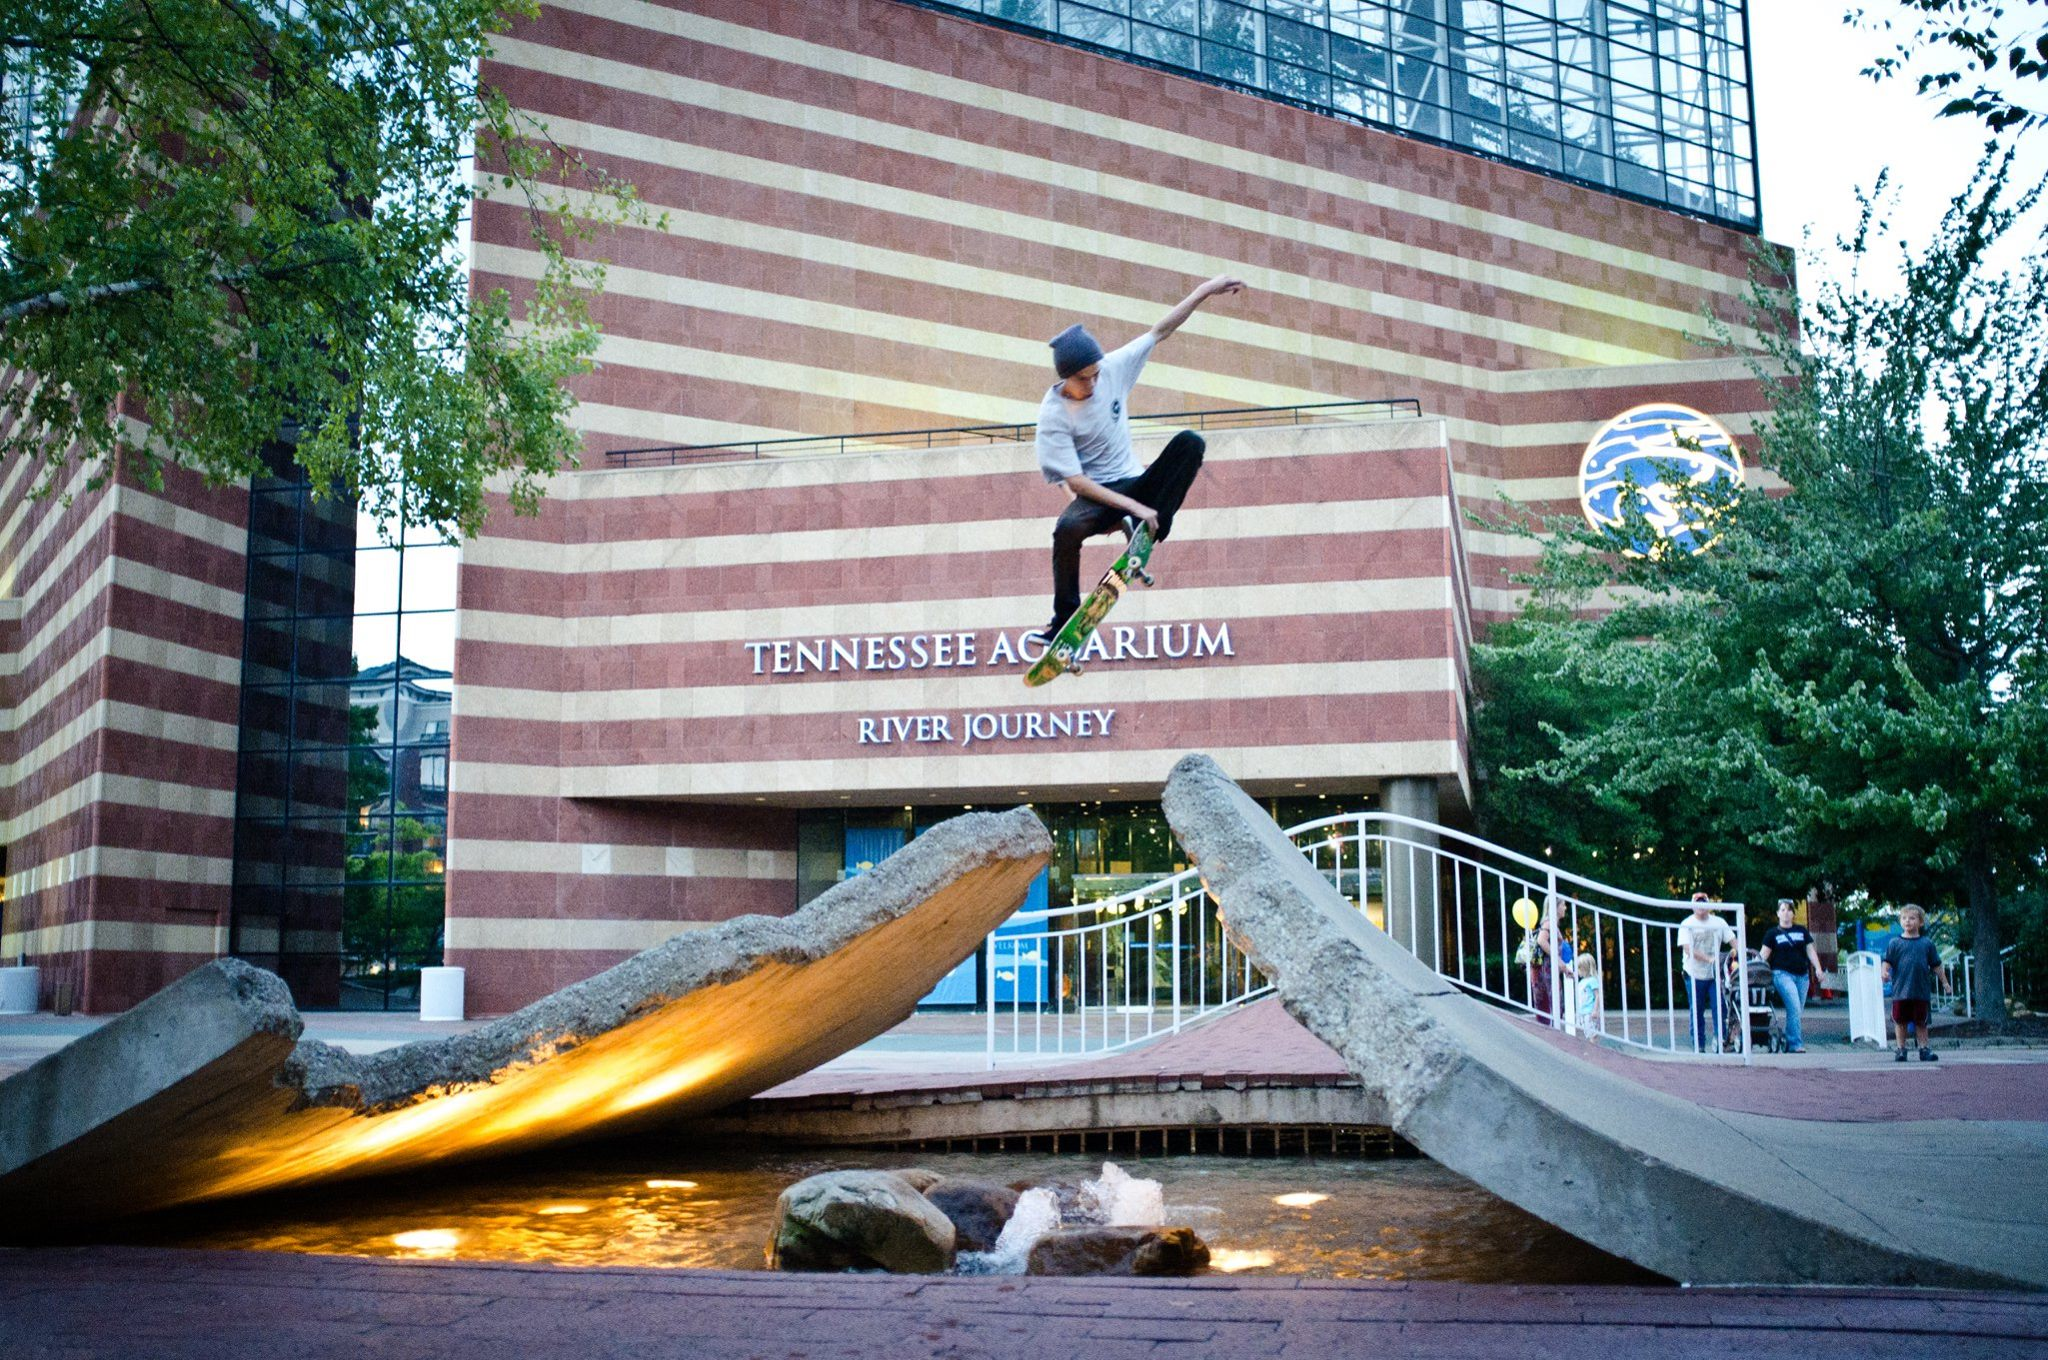 Zeke Logan Crail Grab Tennessee Aquarium